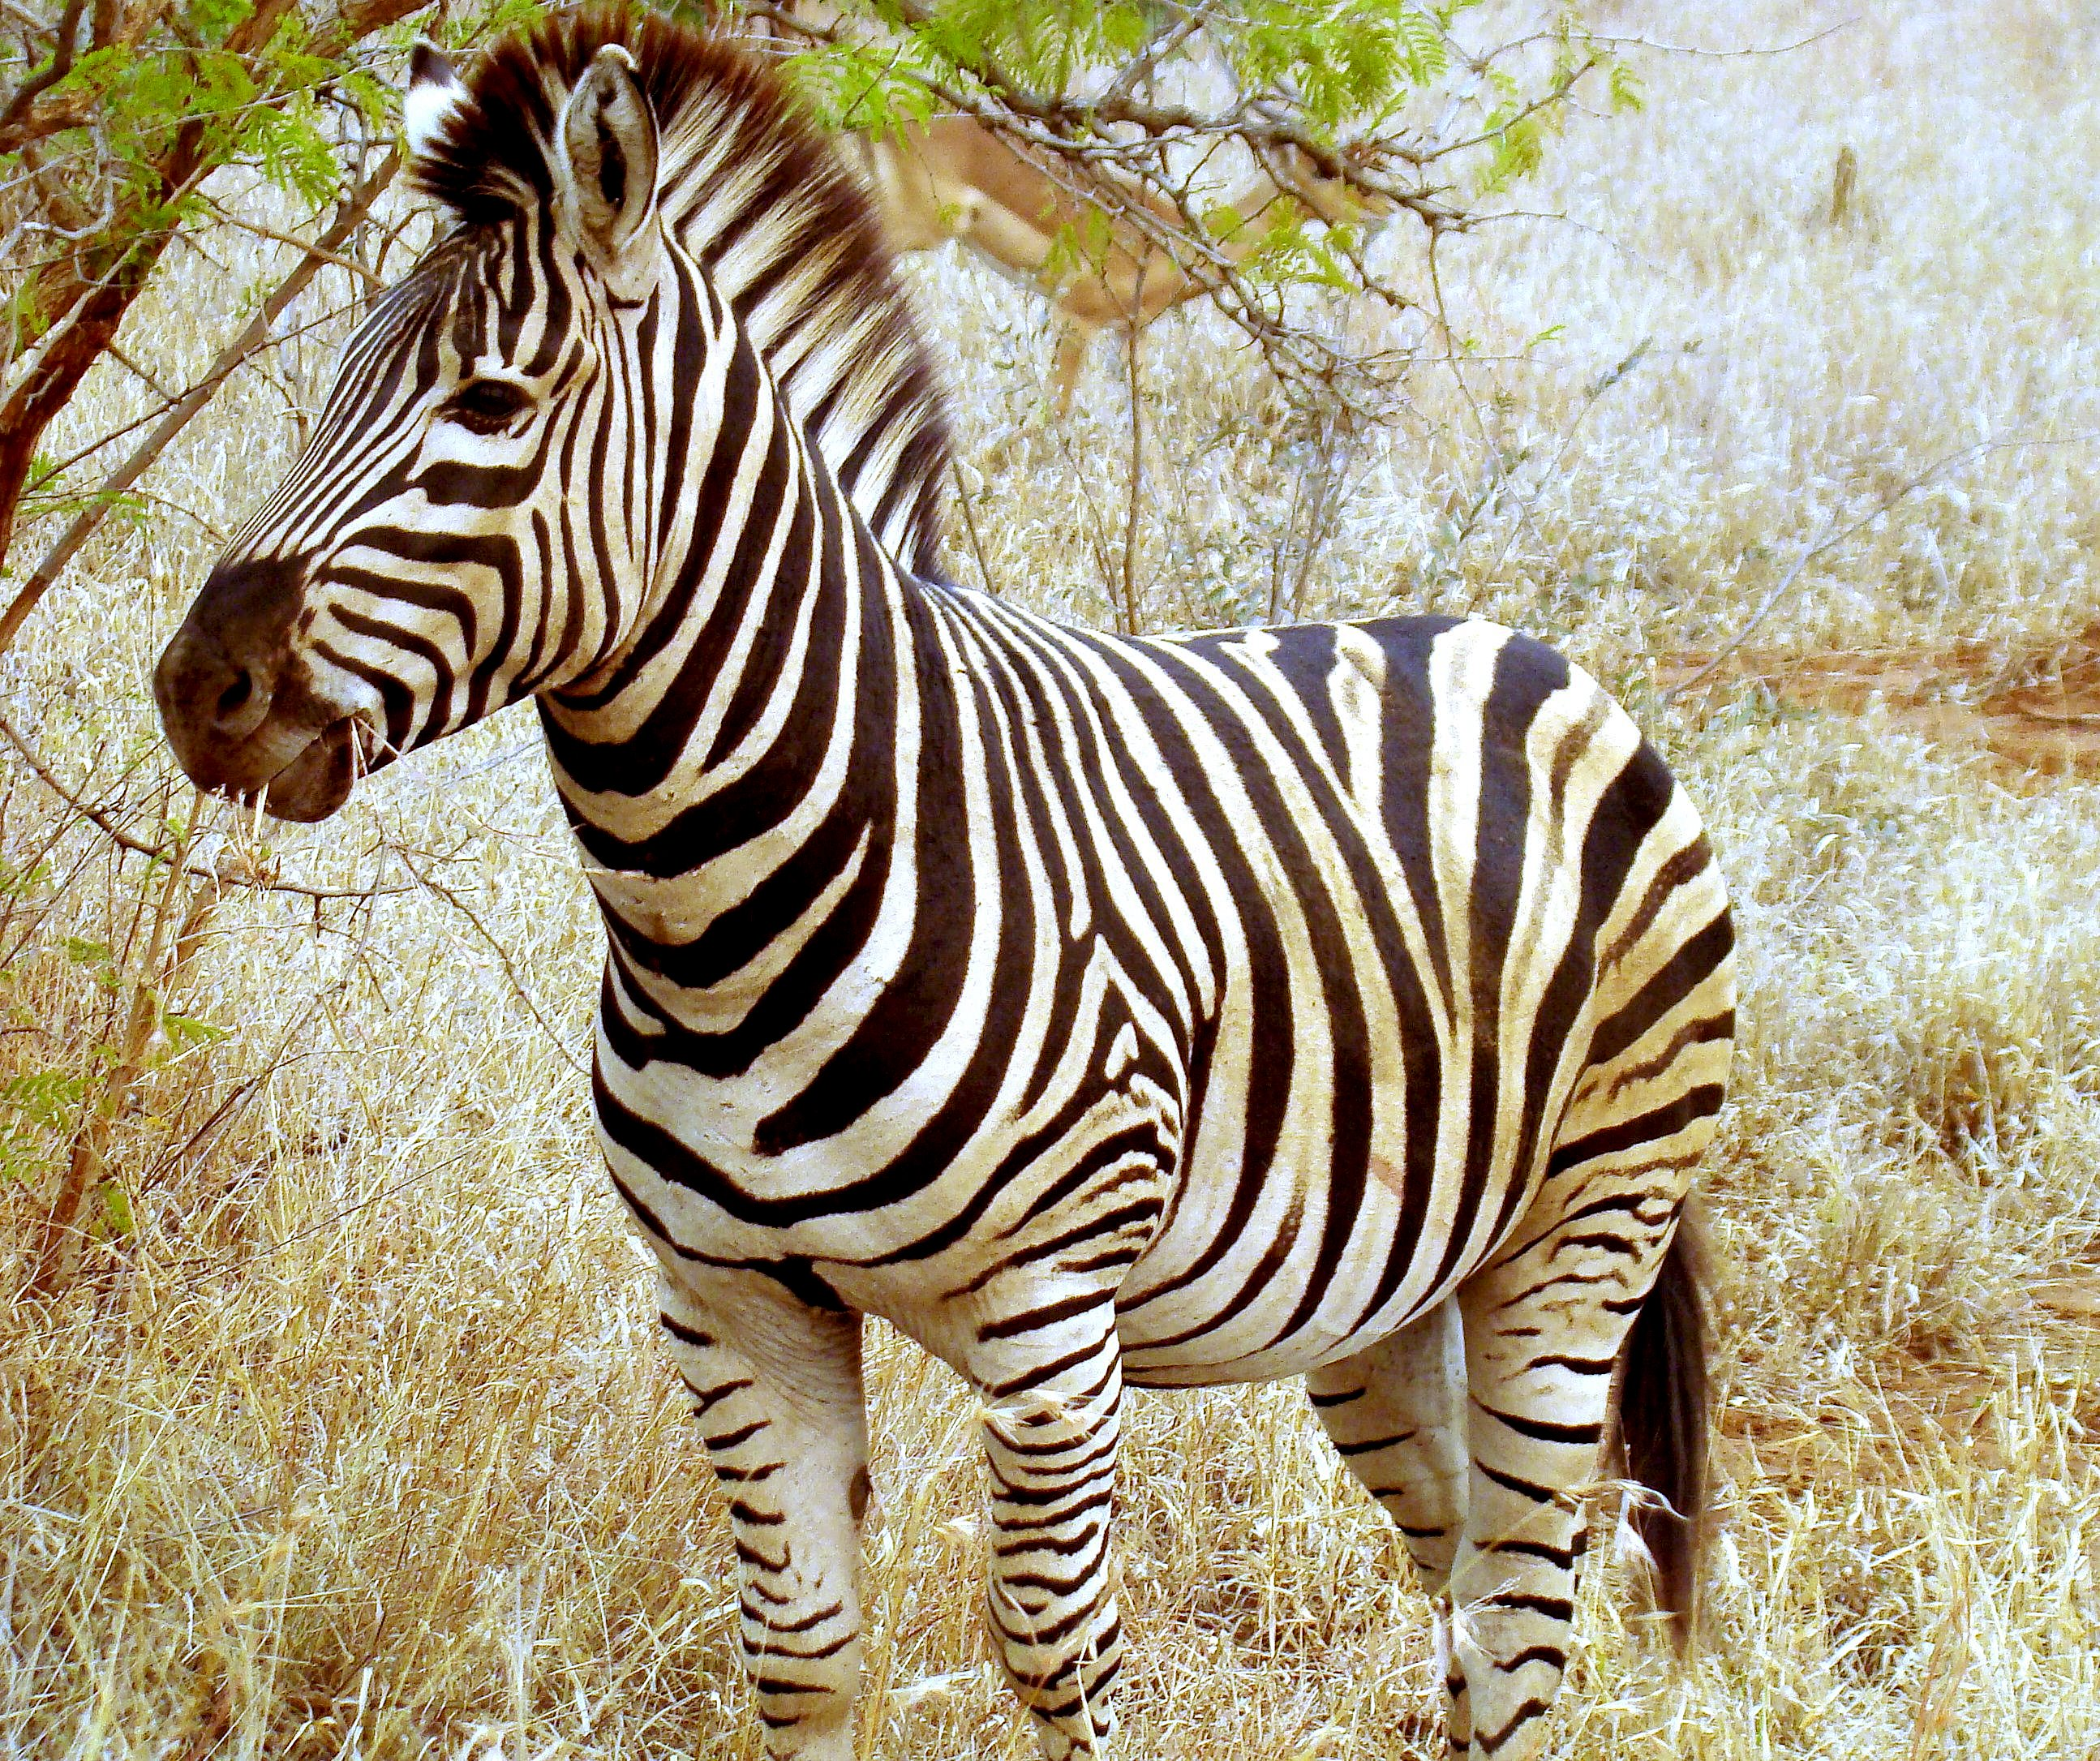 File:Beautiful Zebra in South Africa.JPG - Wikimedia Commons